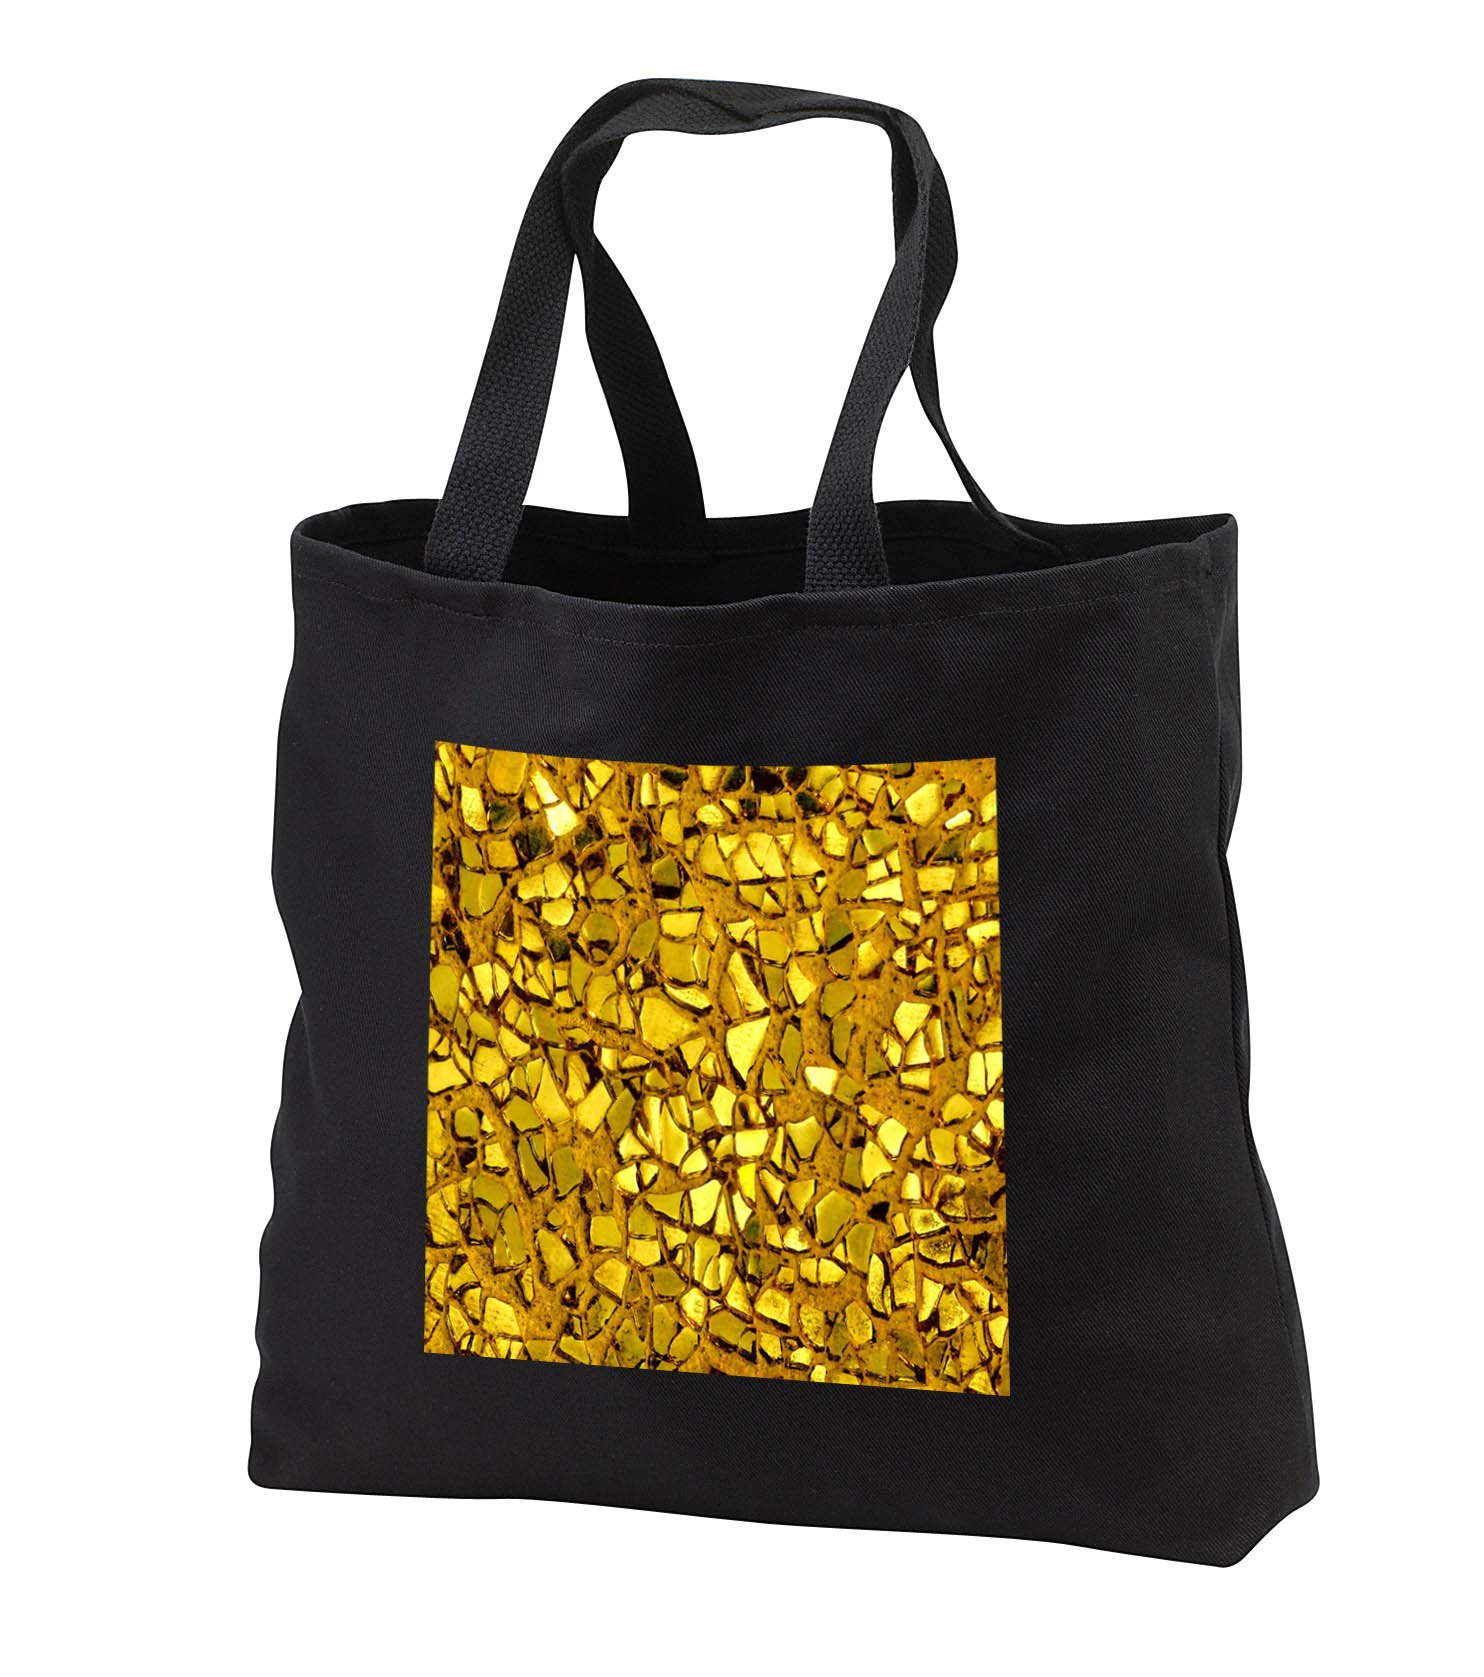 Lens Art by Florene - Everything Gold - Image of Closeup Of Broken Gold Glass Mosaic - Tote Bags - Black Tote Bag JUMBO 20w x 15h x 5d (tb_291029_3)